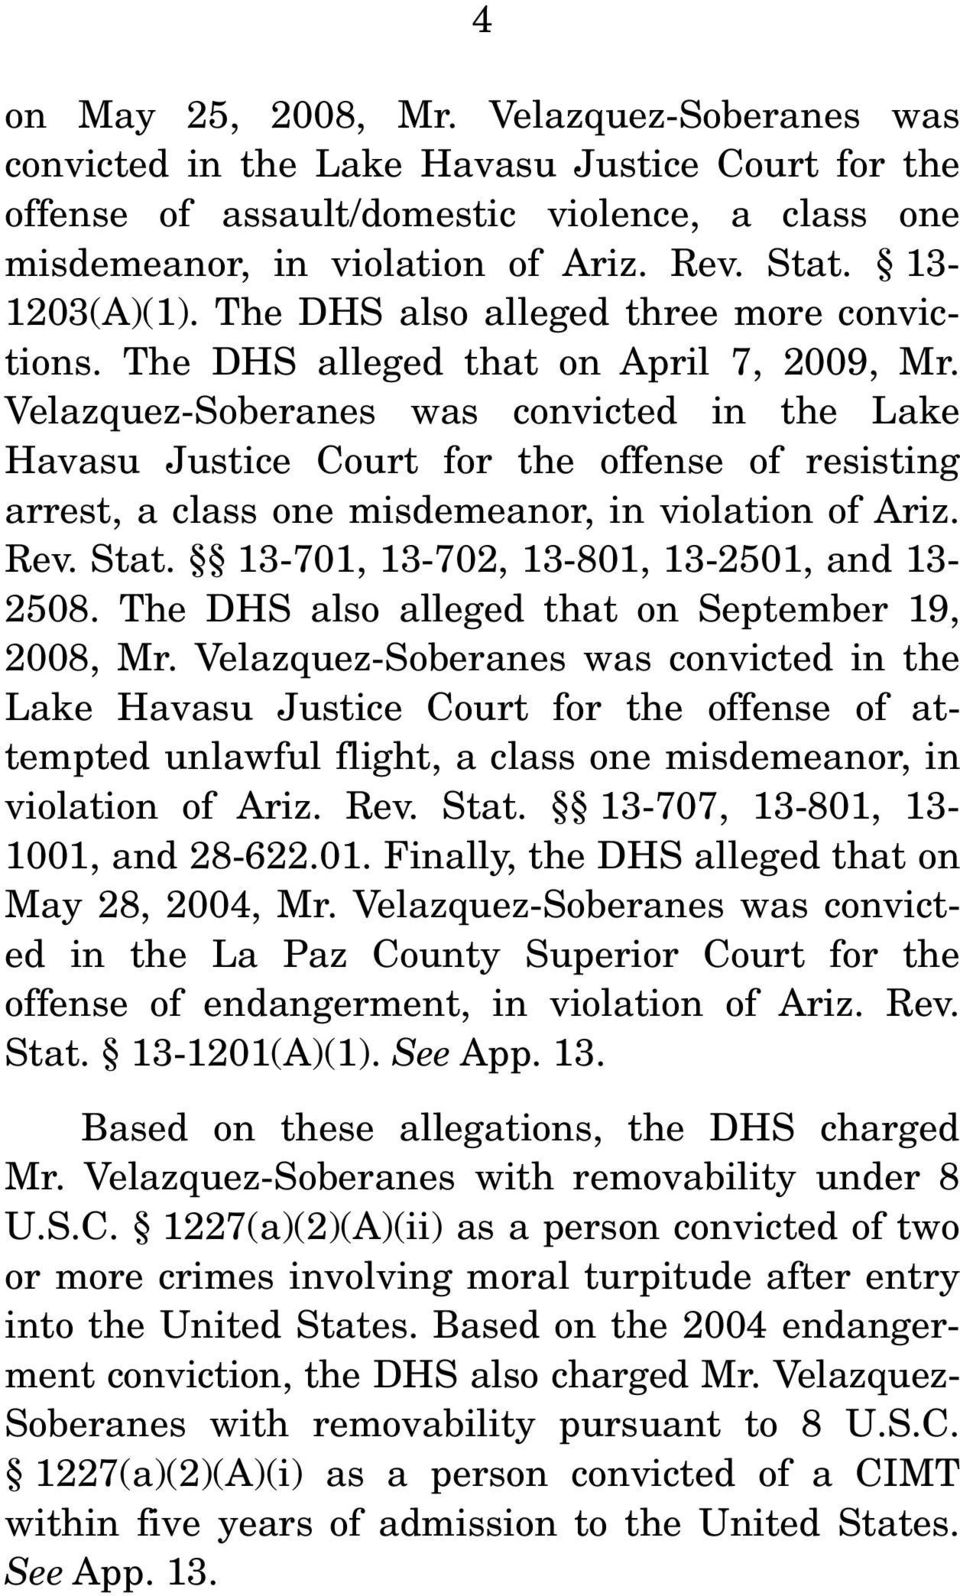 Velazquez-Soberanes was convicted in the Lake Havasu Justice Court for the offense of resisting arrest, a class one misdemeanor, in violation of Ariz. Rev. Stat.